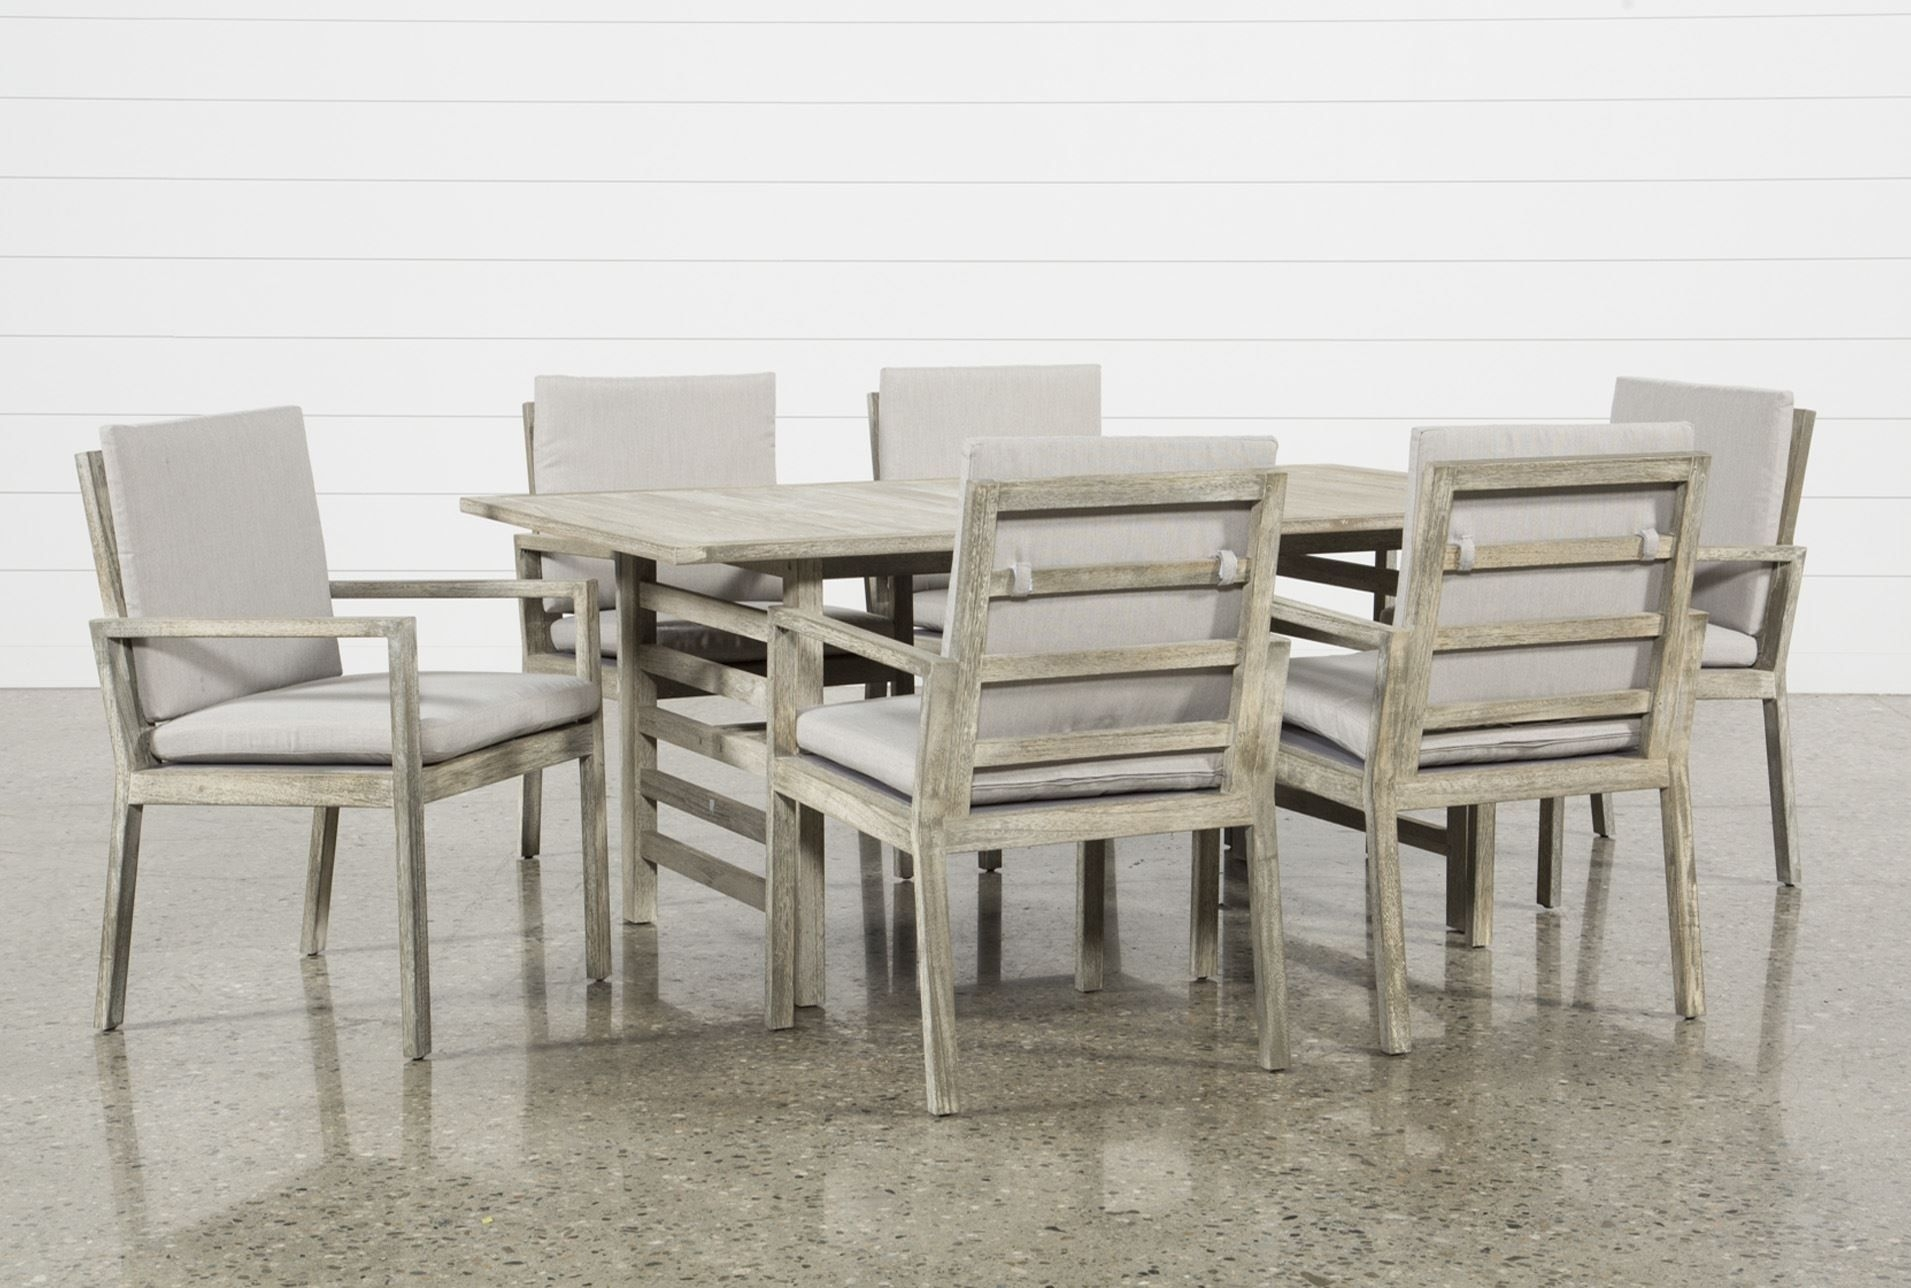 Outdoor Pompeii 7 Piece Dining Set, Grey | Pompeii And Products Intended For Latest Caira 9 Piece Extension Dining Sets With Diamond Back Chairs (View 5 of 20)